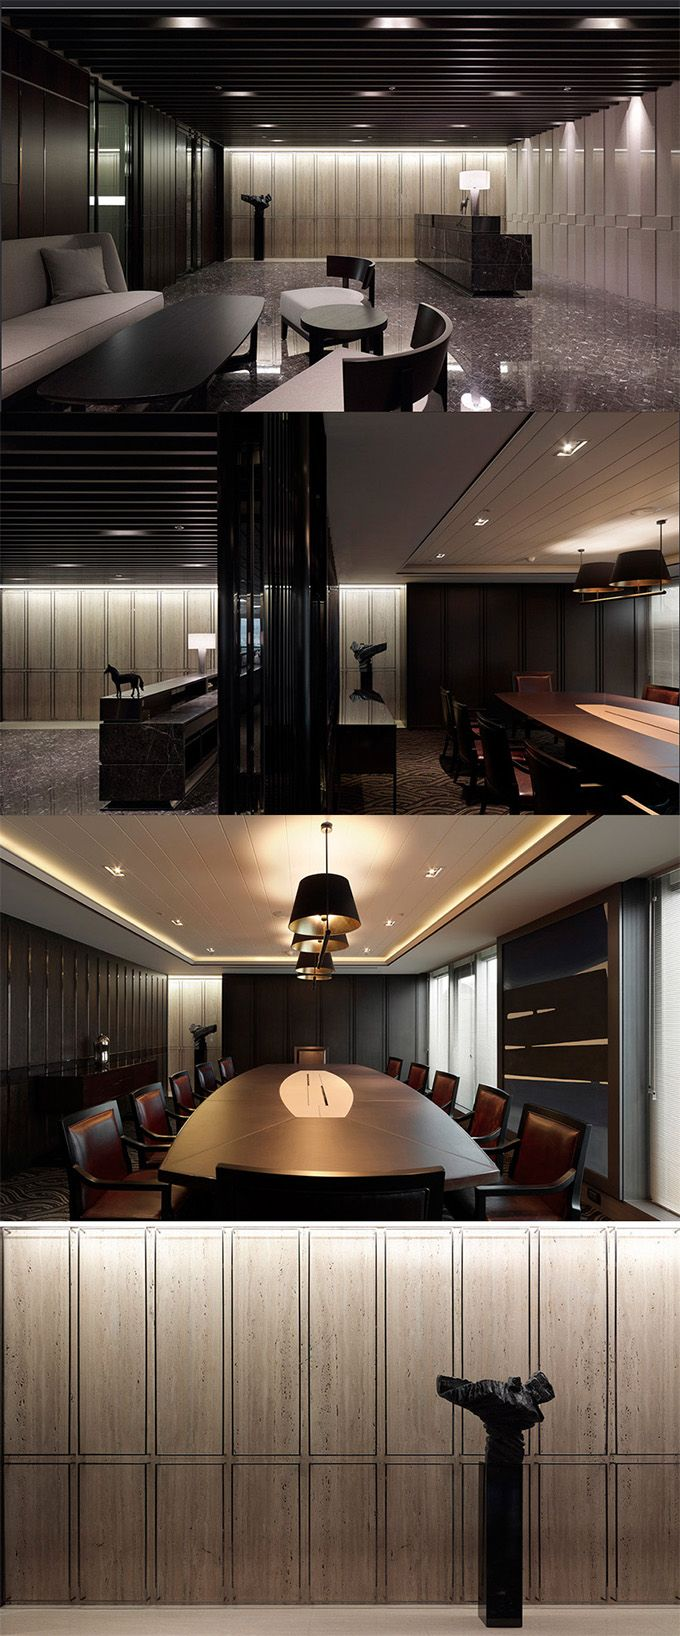 I Love The Dark Sleek Contemporary Feel To Space Minimal Luxury Office Design Dedicated Deliver Superior Interior Acoustic Experince